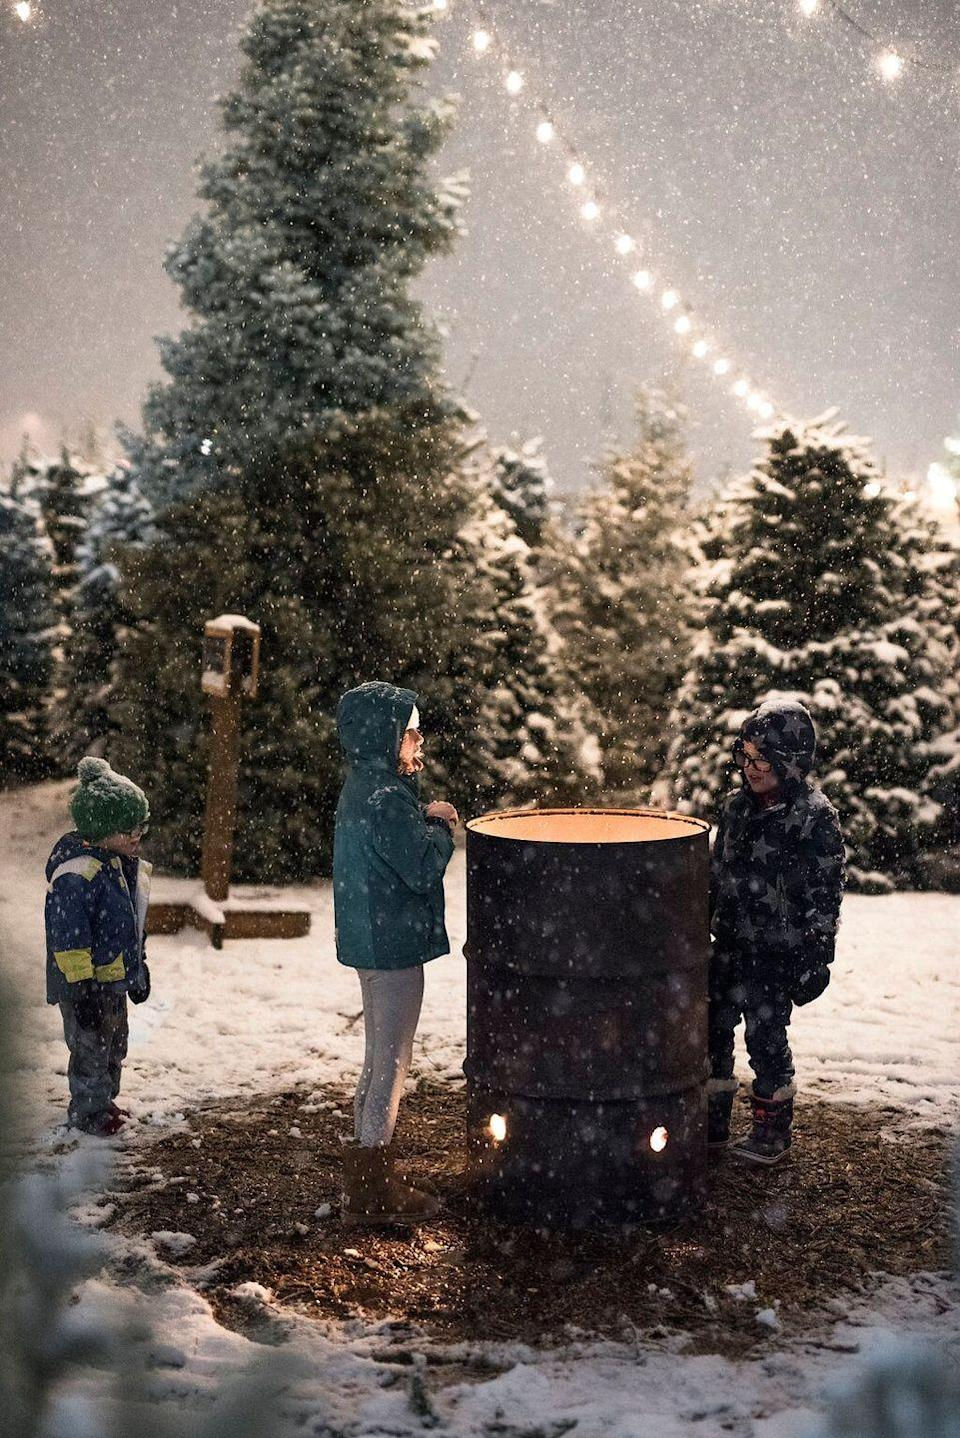 """<p><strong>Riverton, Utah</strong> (November 23-December 23)</p><p>The <strong><a href=""""https://petersenfamilyfarm.com/pages/contact-us"""" rel=""""nofollow noopener"""" target=""""_blank"""" data-ylk=""""slk:Petersen Family Farm"""" class=""""link rapid-noclick-resp"""">Petersen Family Farm</a> </strong>has it all: Santa, homemade hot chocolate, and interactive wagon rides. On November 20 and 21, head to the farm for a holiday wreath workshop, one of the many opportunities available this season. And when you go, pick up a bag of their home-grown """"Microwavable Popcorn on the Cob"""" to remember your visit. </p>"""